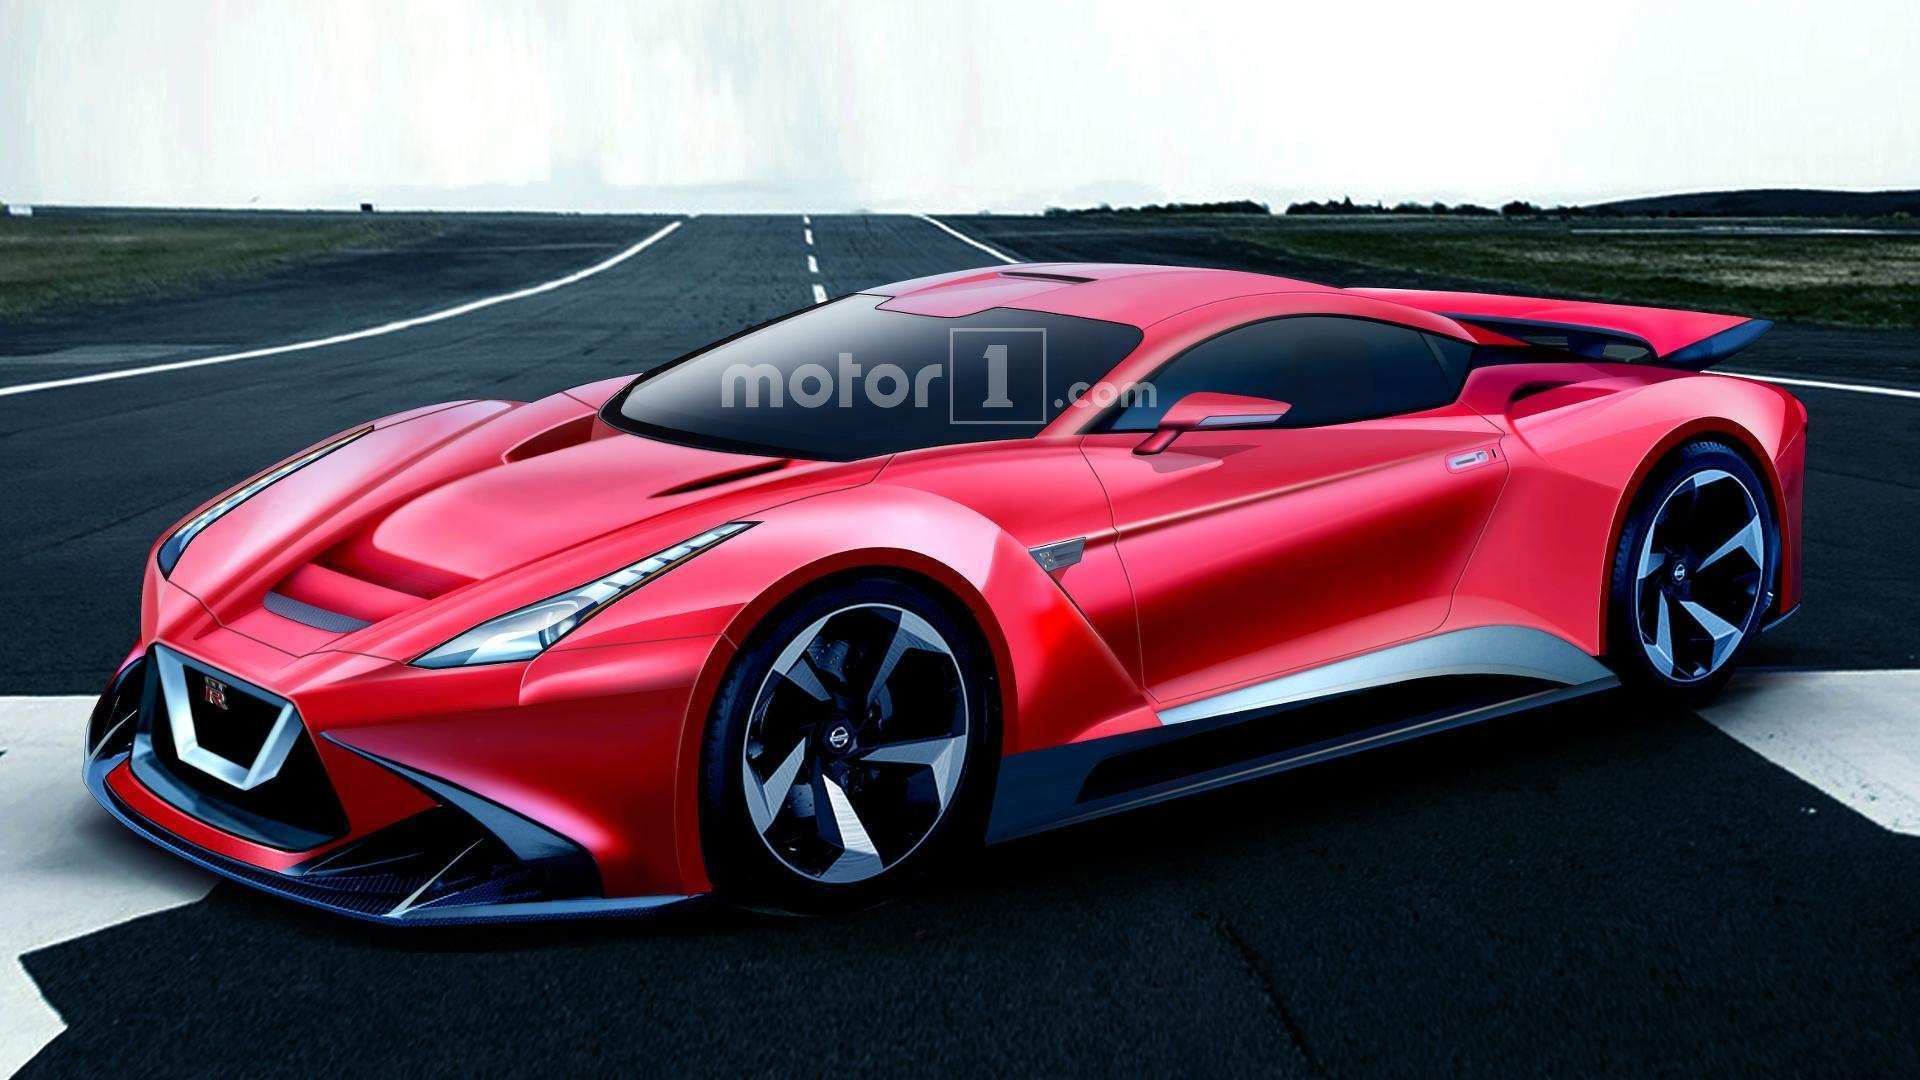 73 New Nissan Gtr R36 Concept 2020 Exterior and Interior with Nissan Gtr R36 Concept 2020